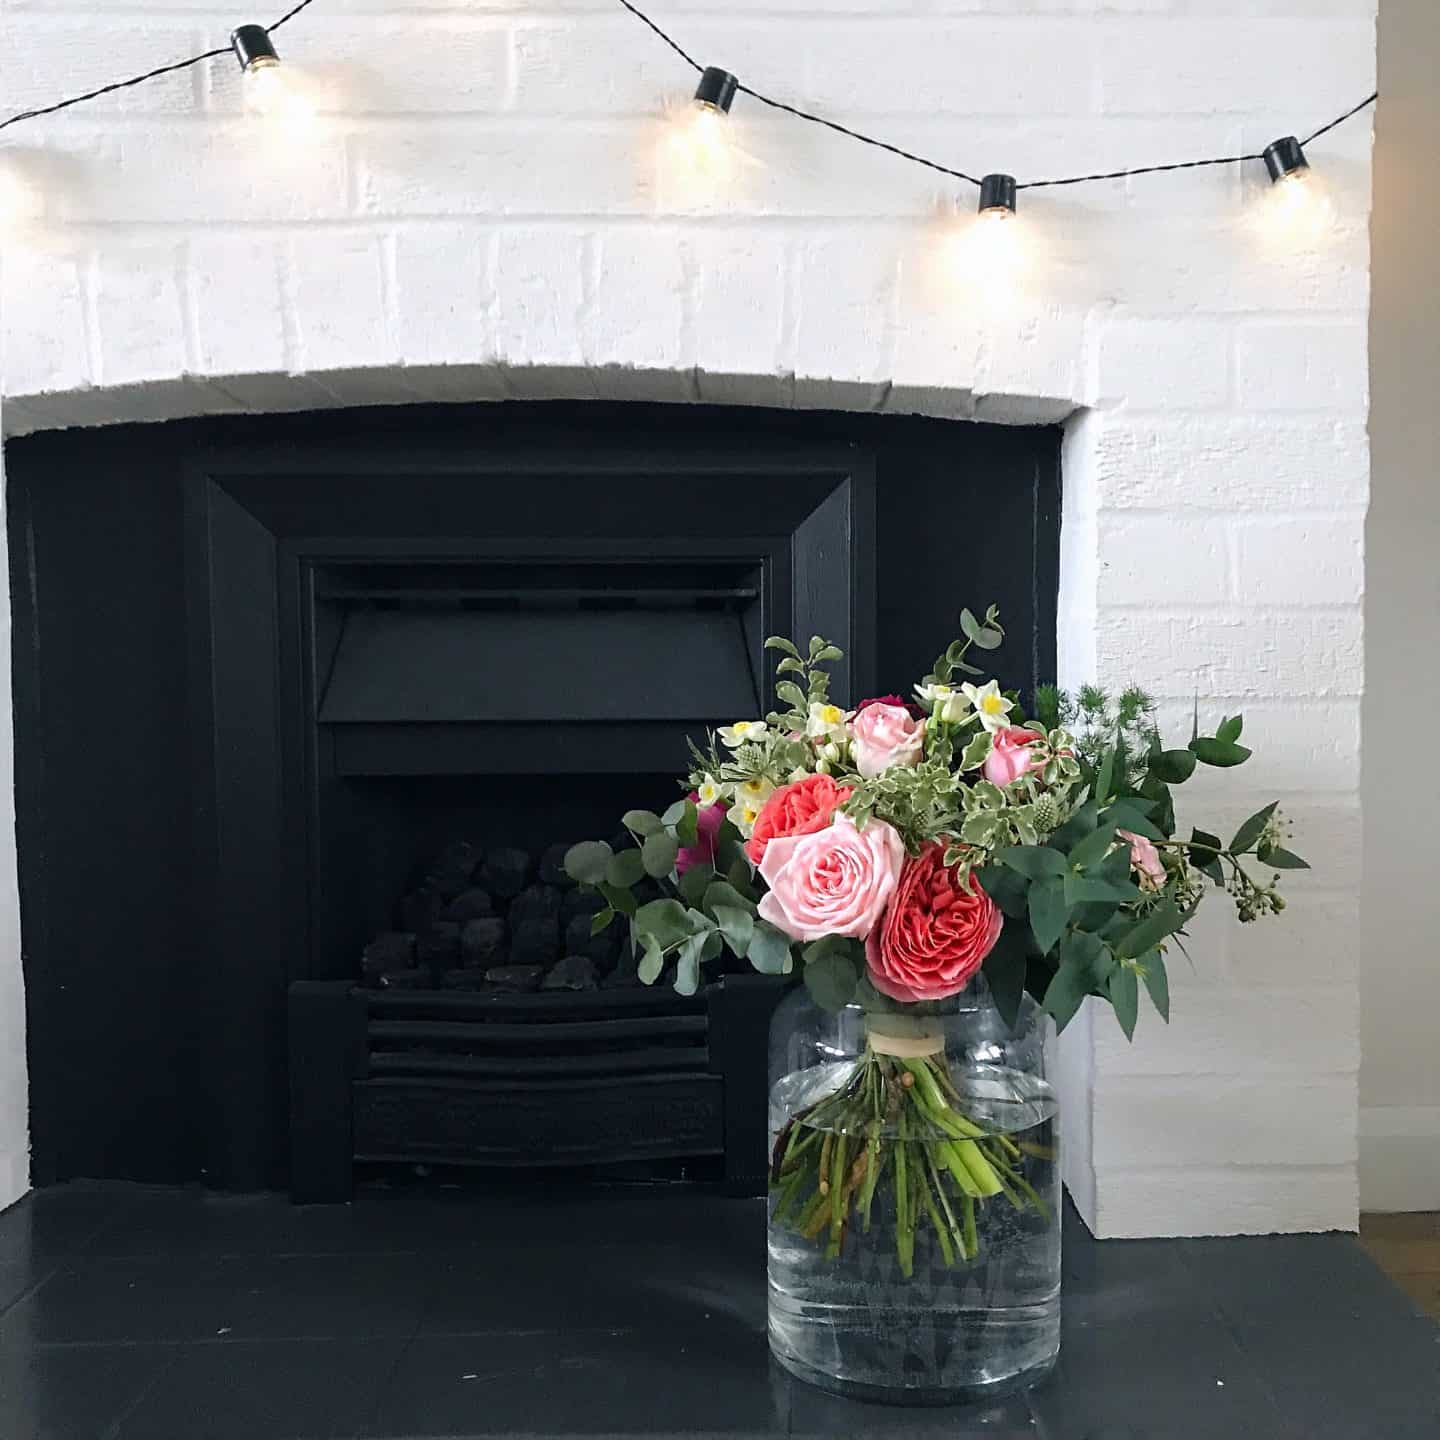 A beautiful bouquet of sustainable Mother's Day flowers from The Real Flower Company in front of a fireplace.